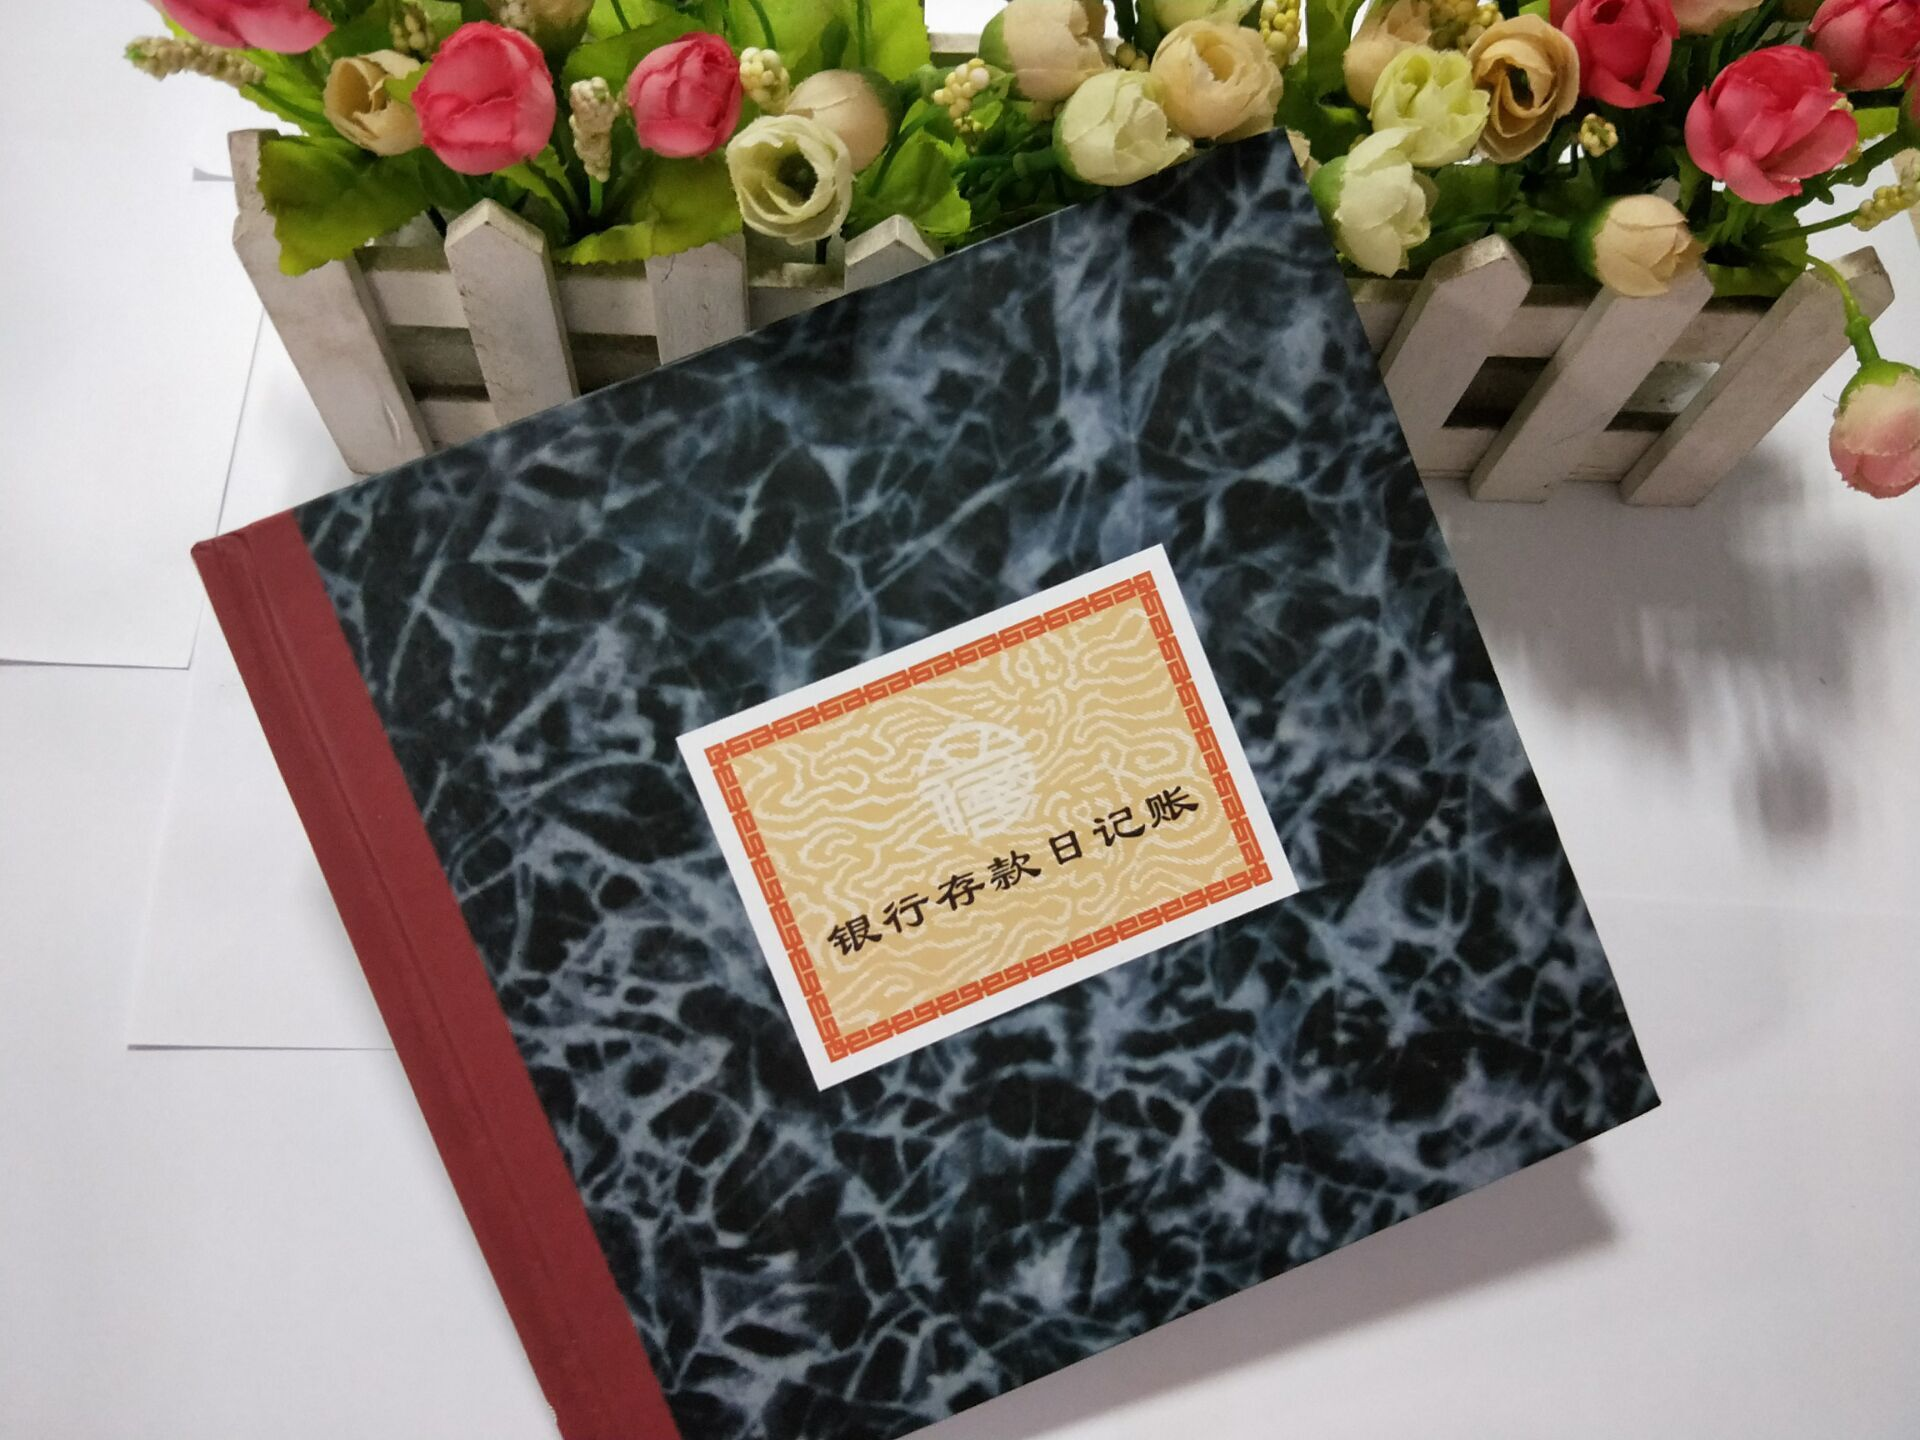 Lixin 235D General Ledger Lixin Account Book C Account 100 Pages/This Bank Deposit Journal 24 Open